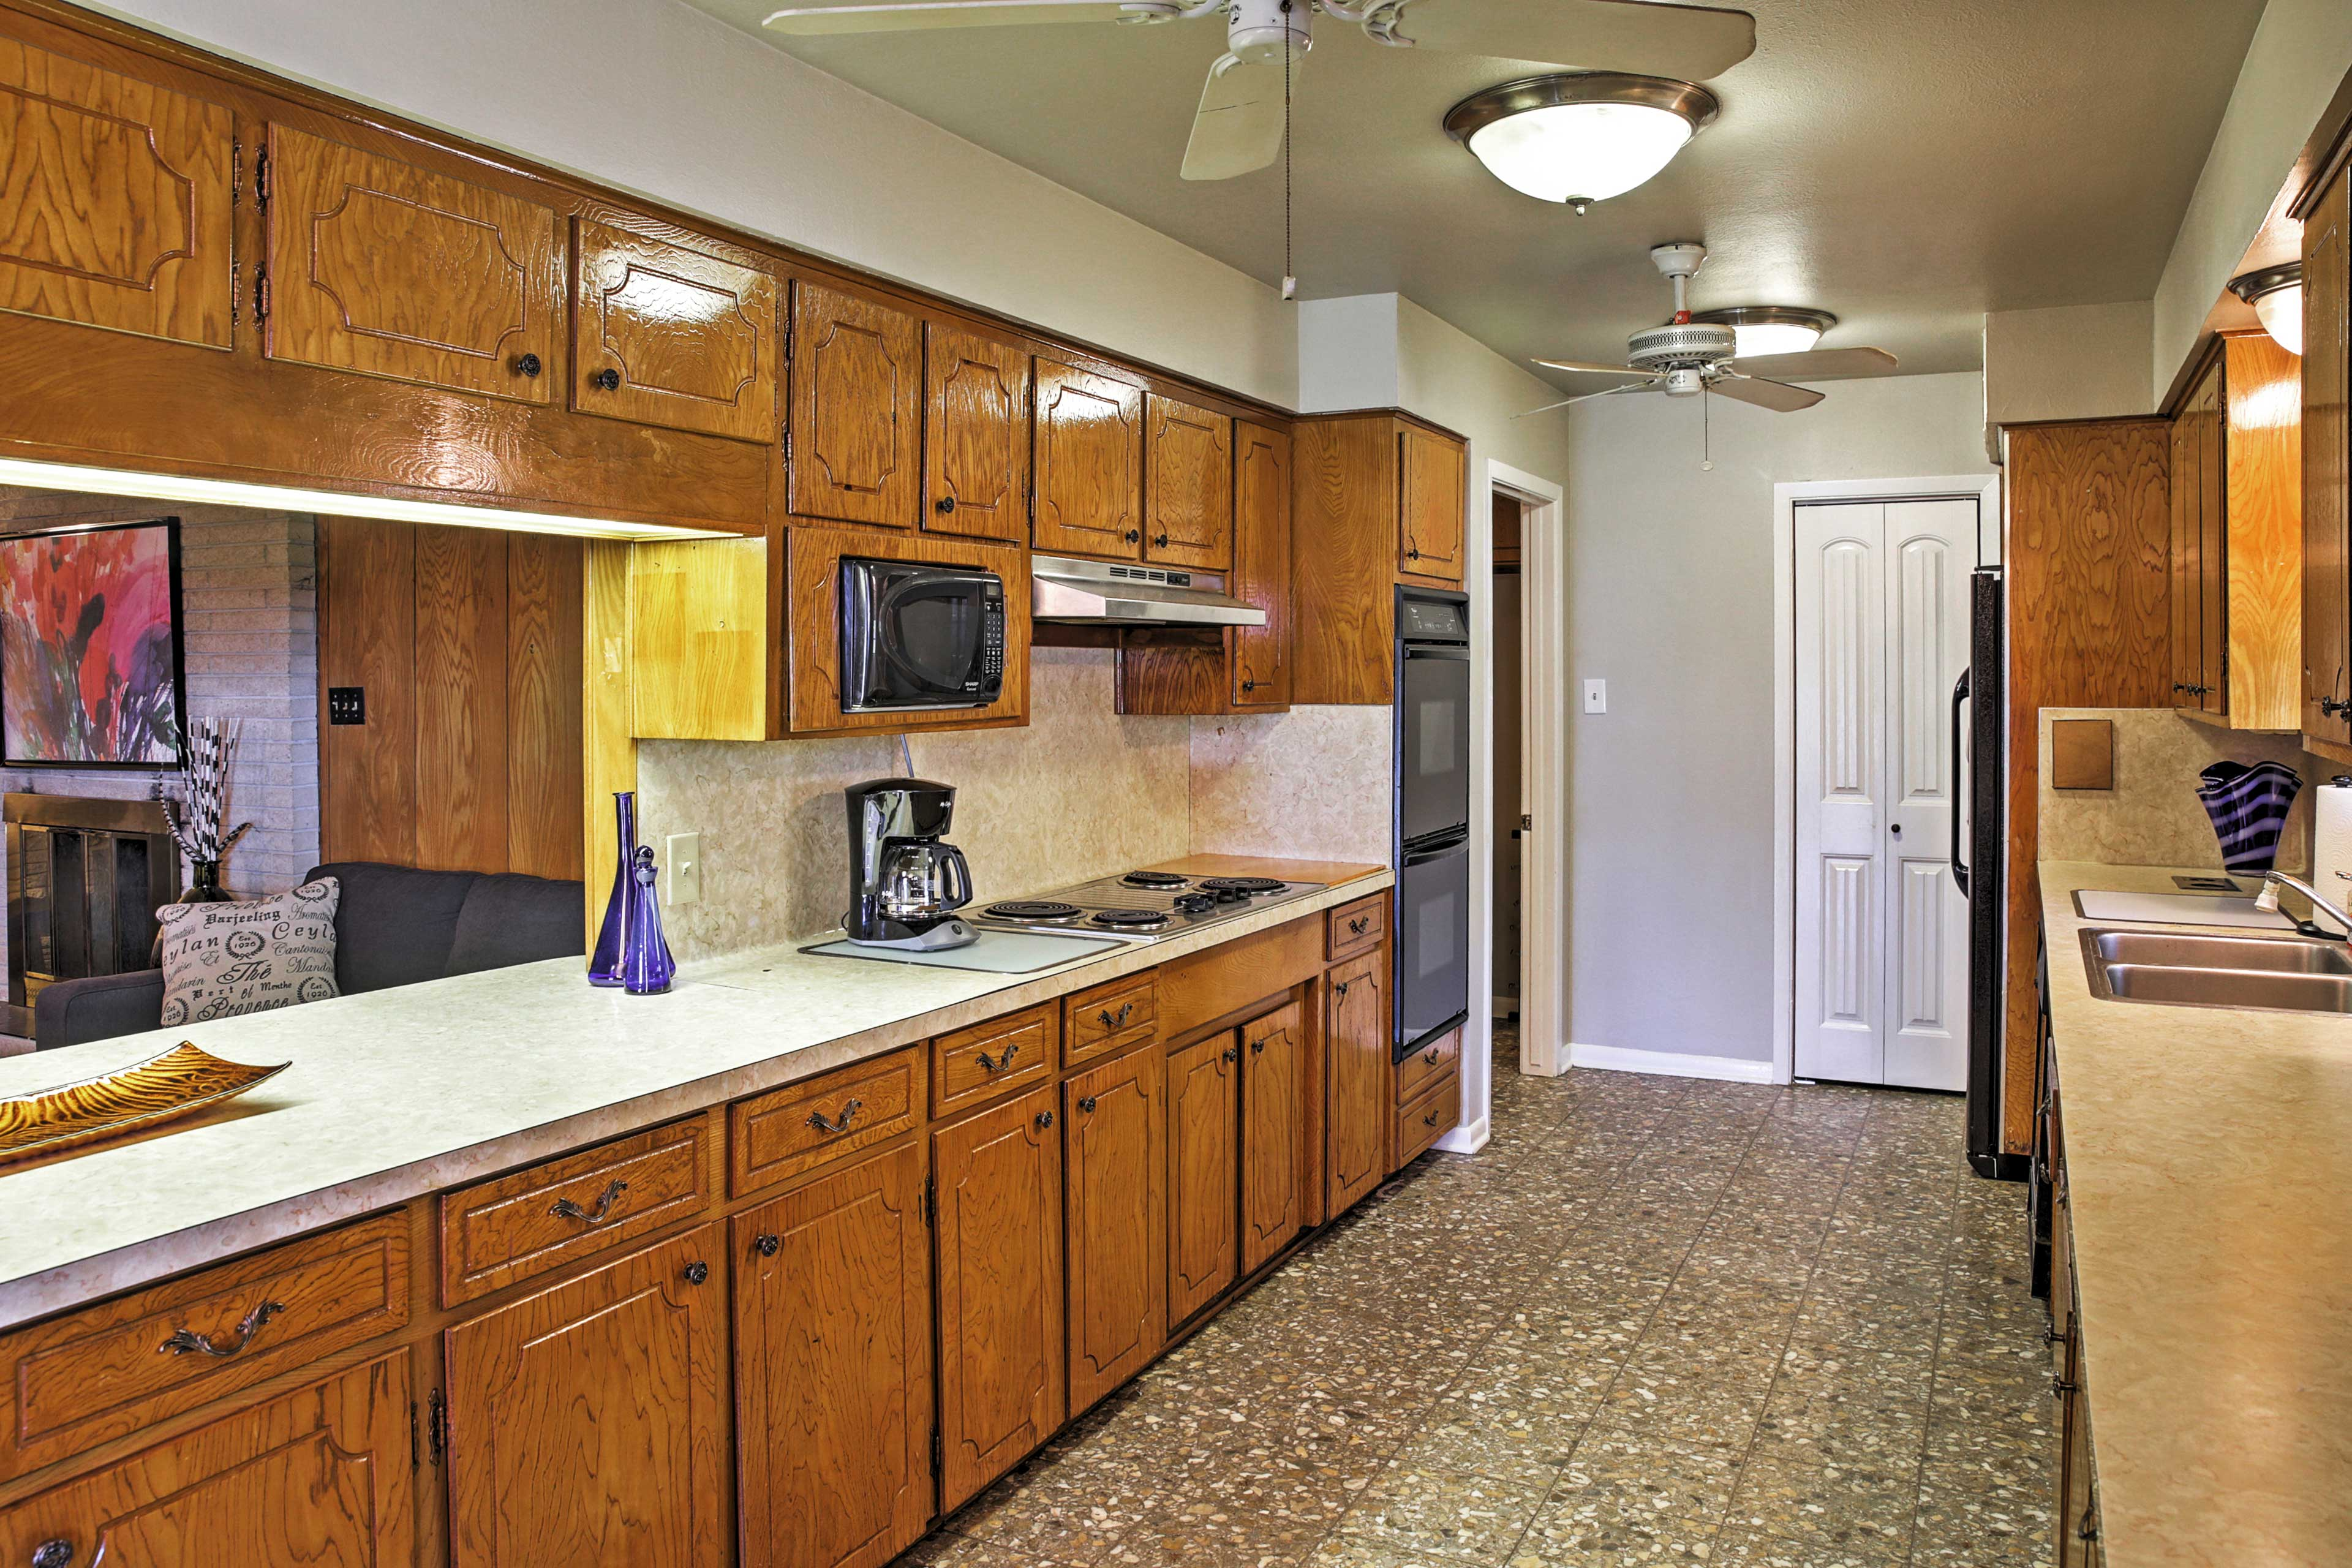 The kitchen's pass through window allows the chef to socialize while cooking!